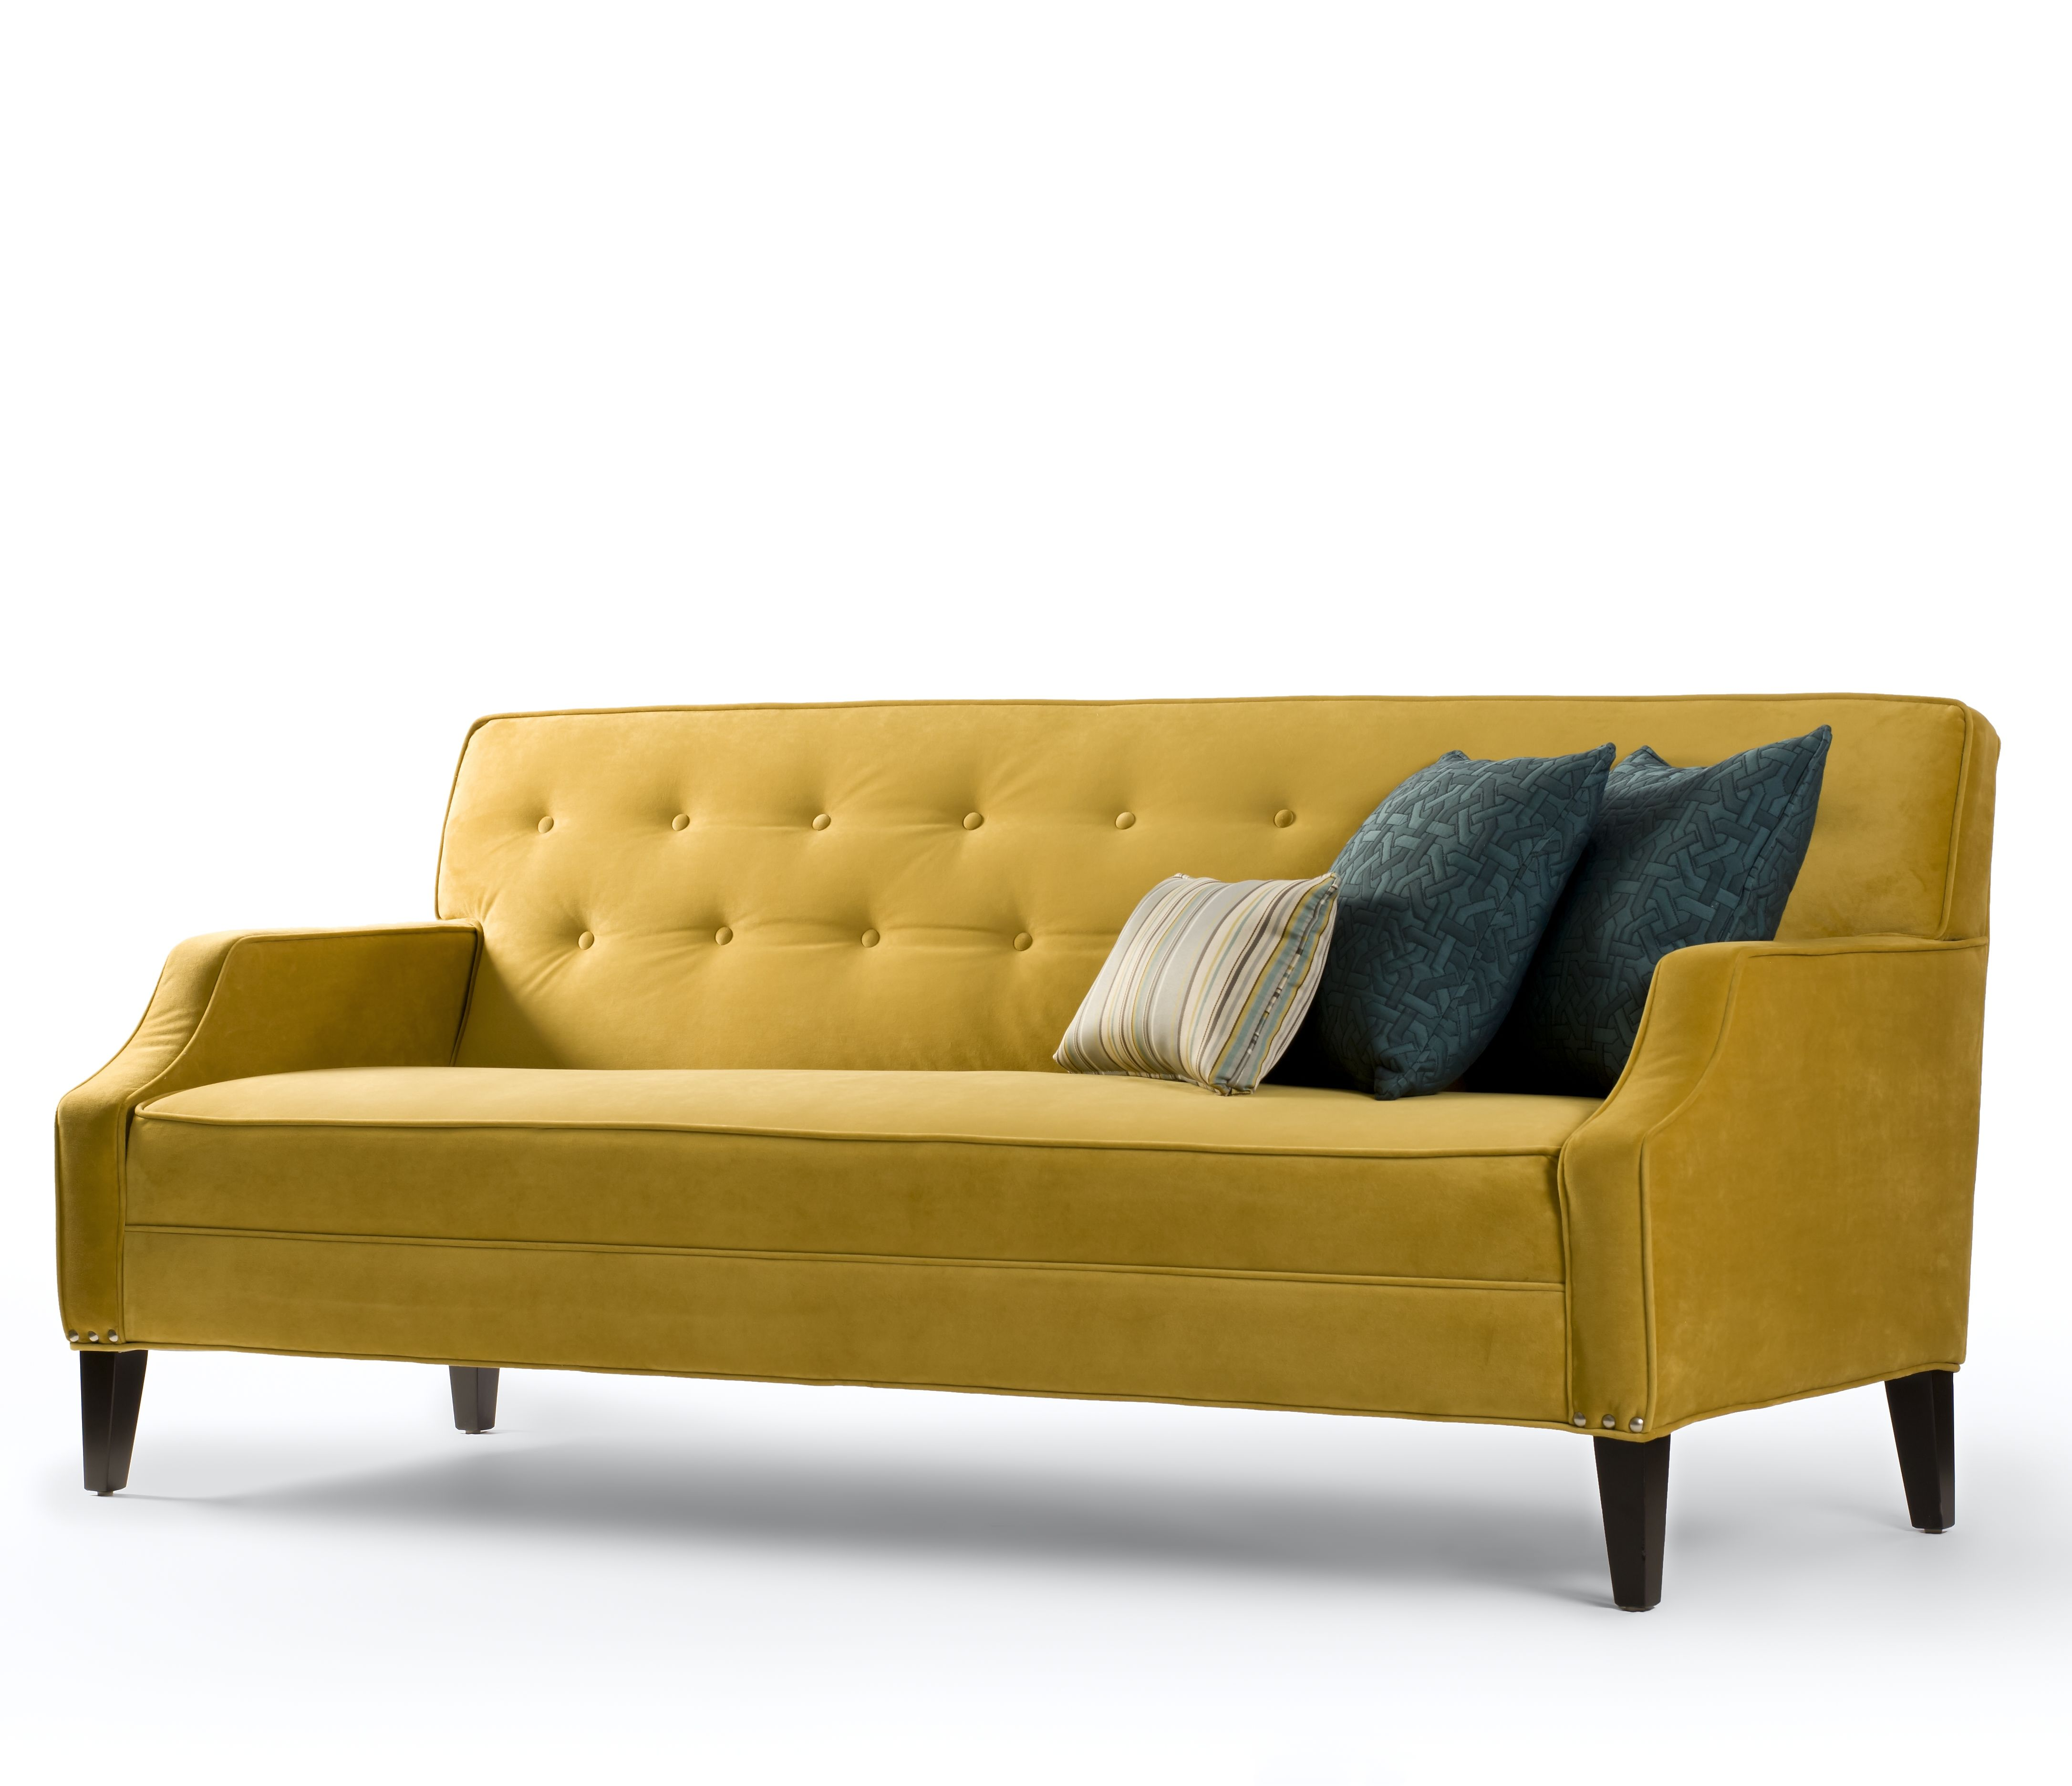 retro golden yellow couch love and reminds me of my great